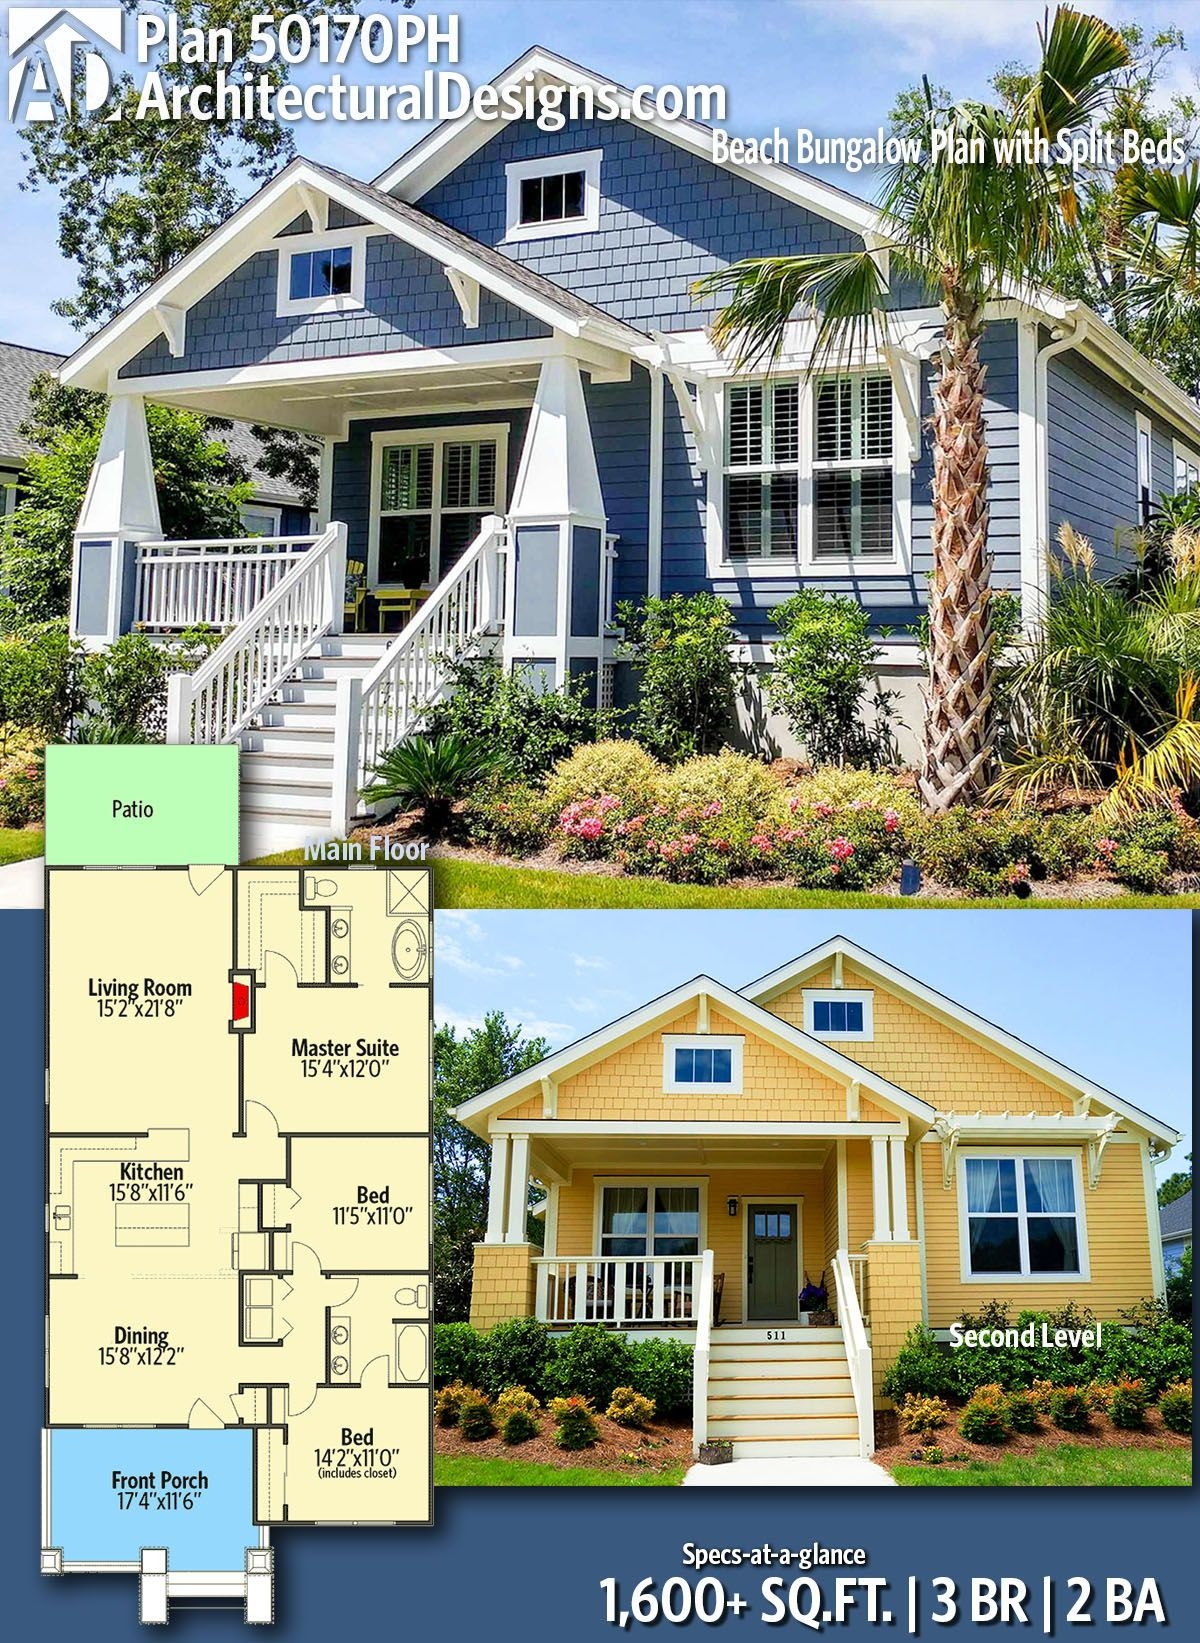 Plan 50170ph Beach Bungalow Plan With Split Beds Beach Bungalows How To Plan Architecture Design